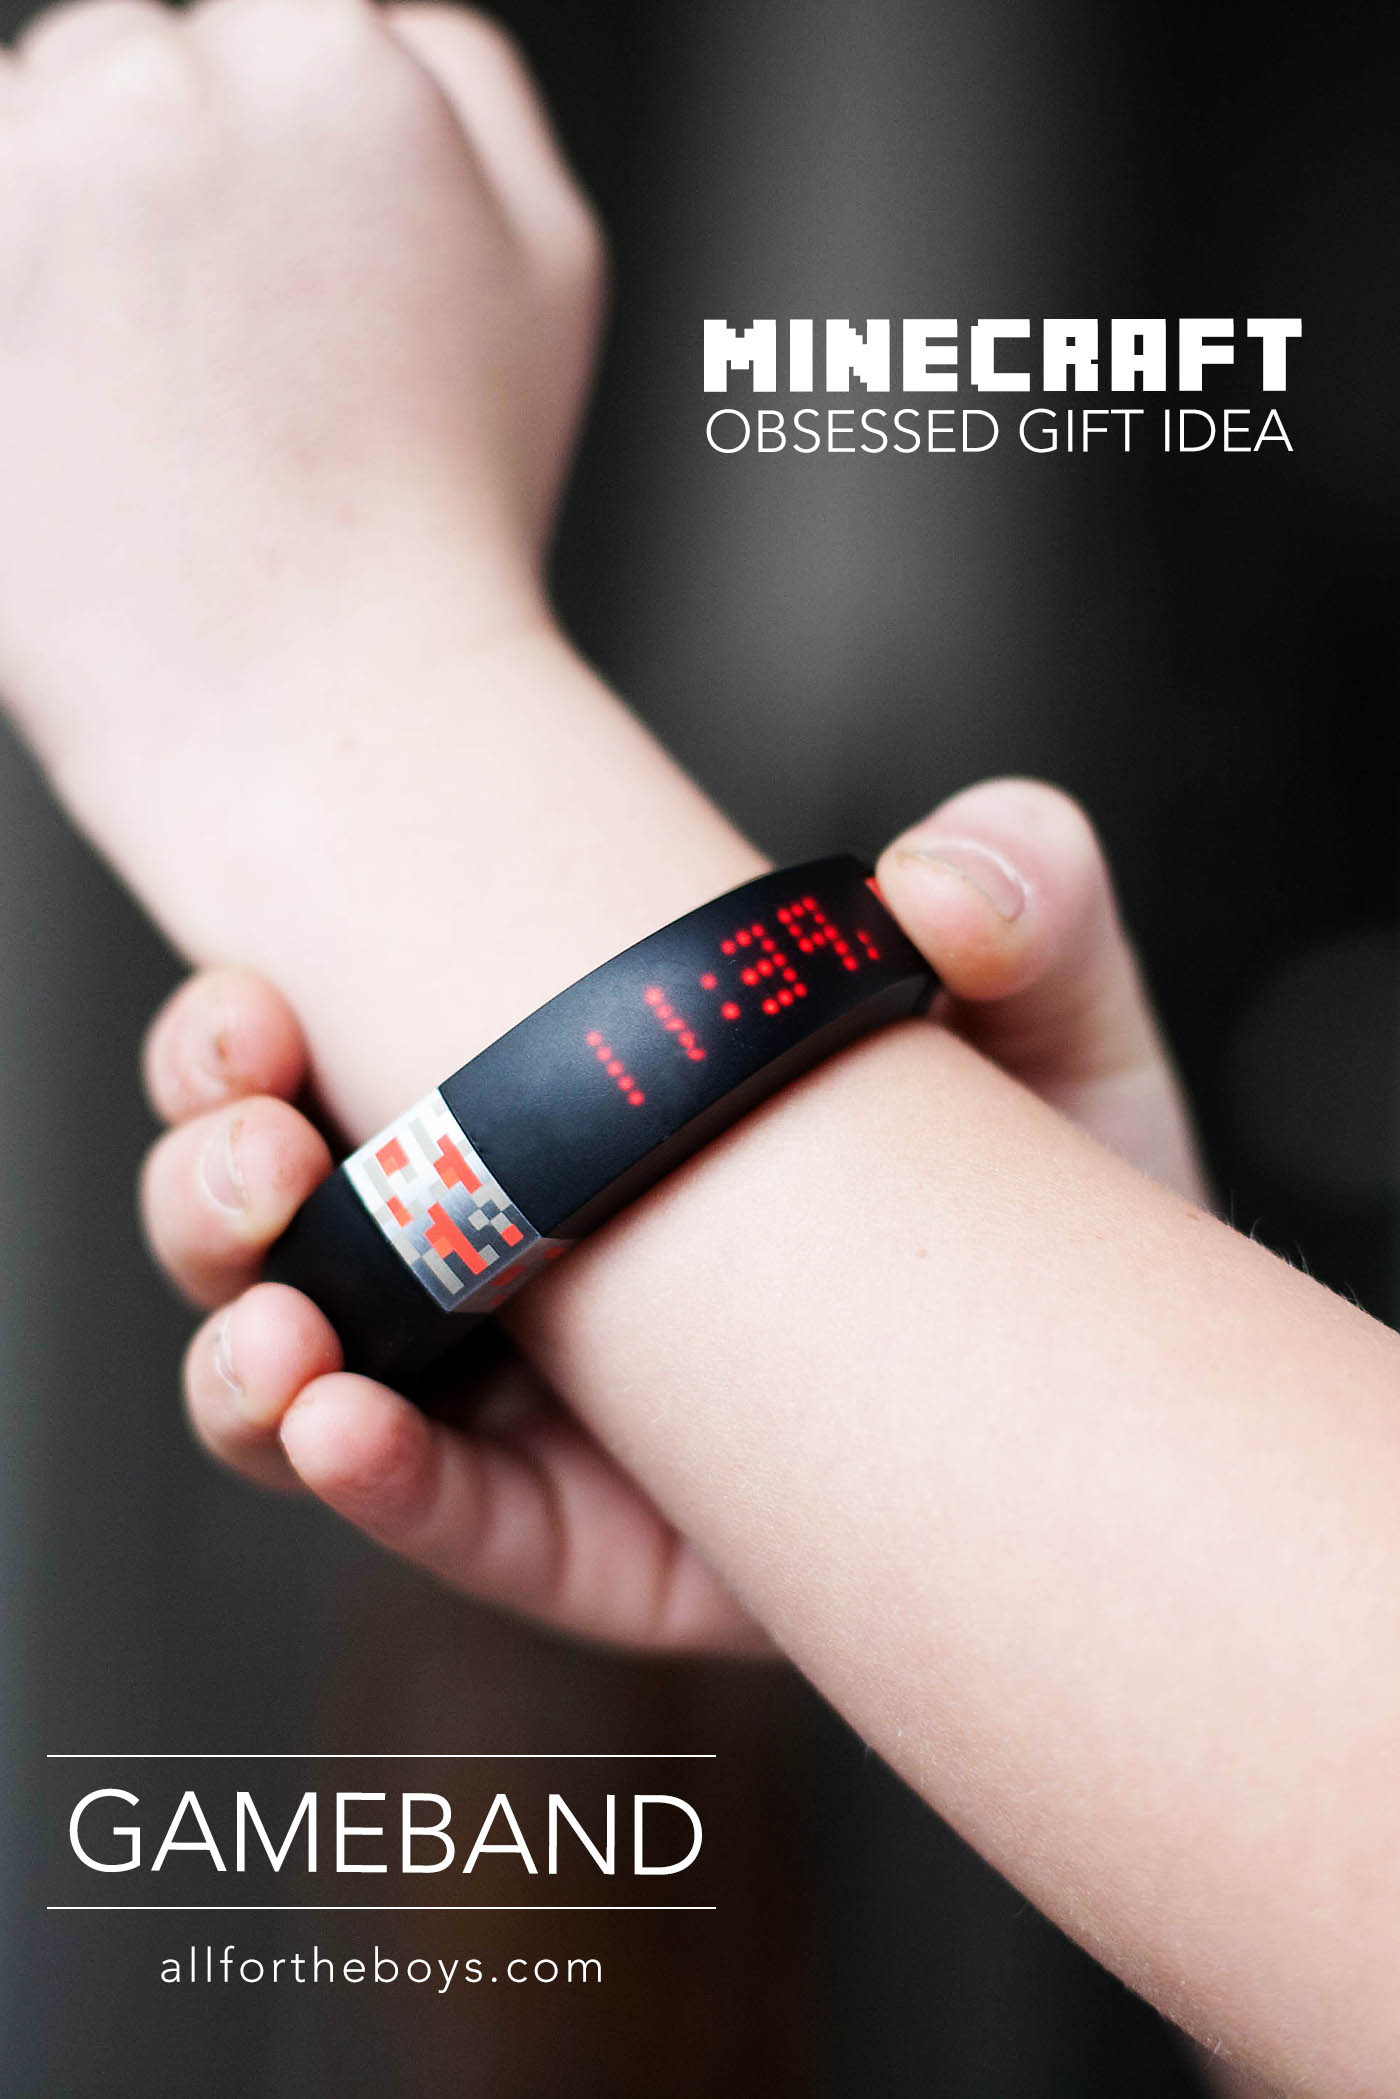 Gameband - gift idea for Minecraft fans